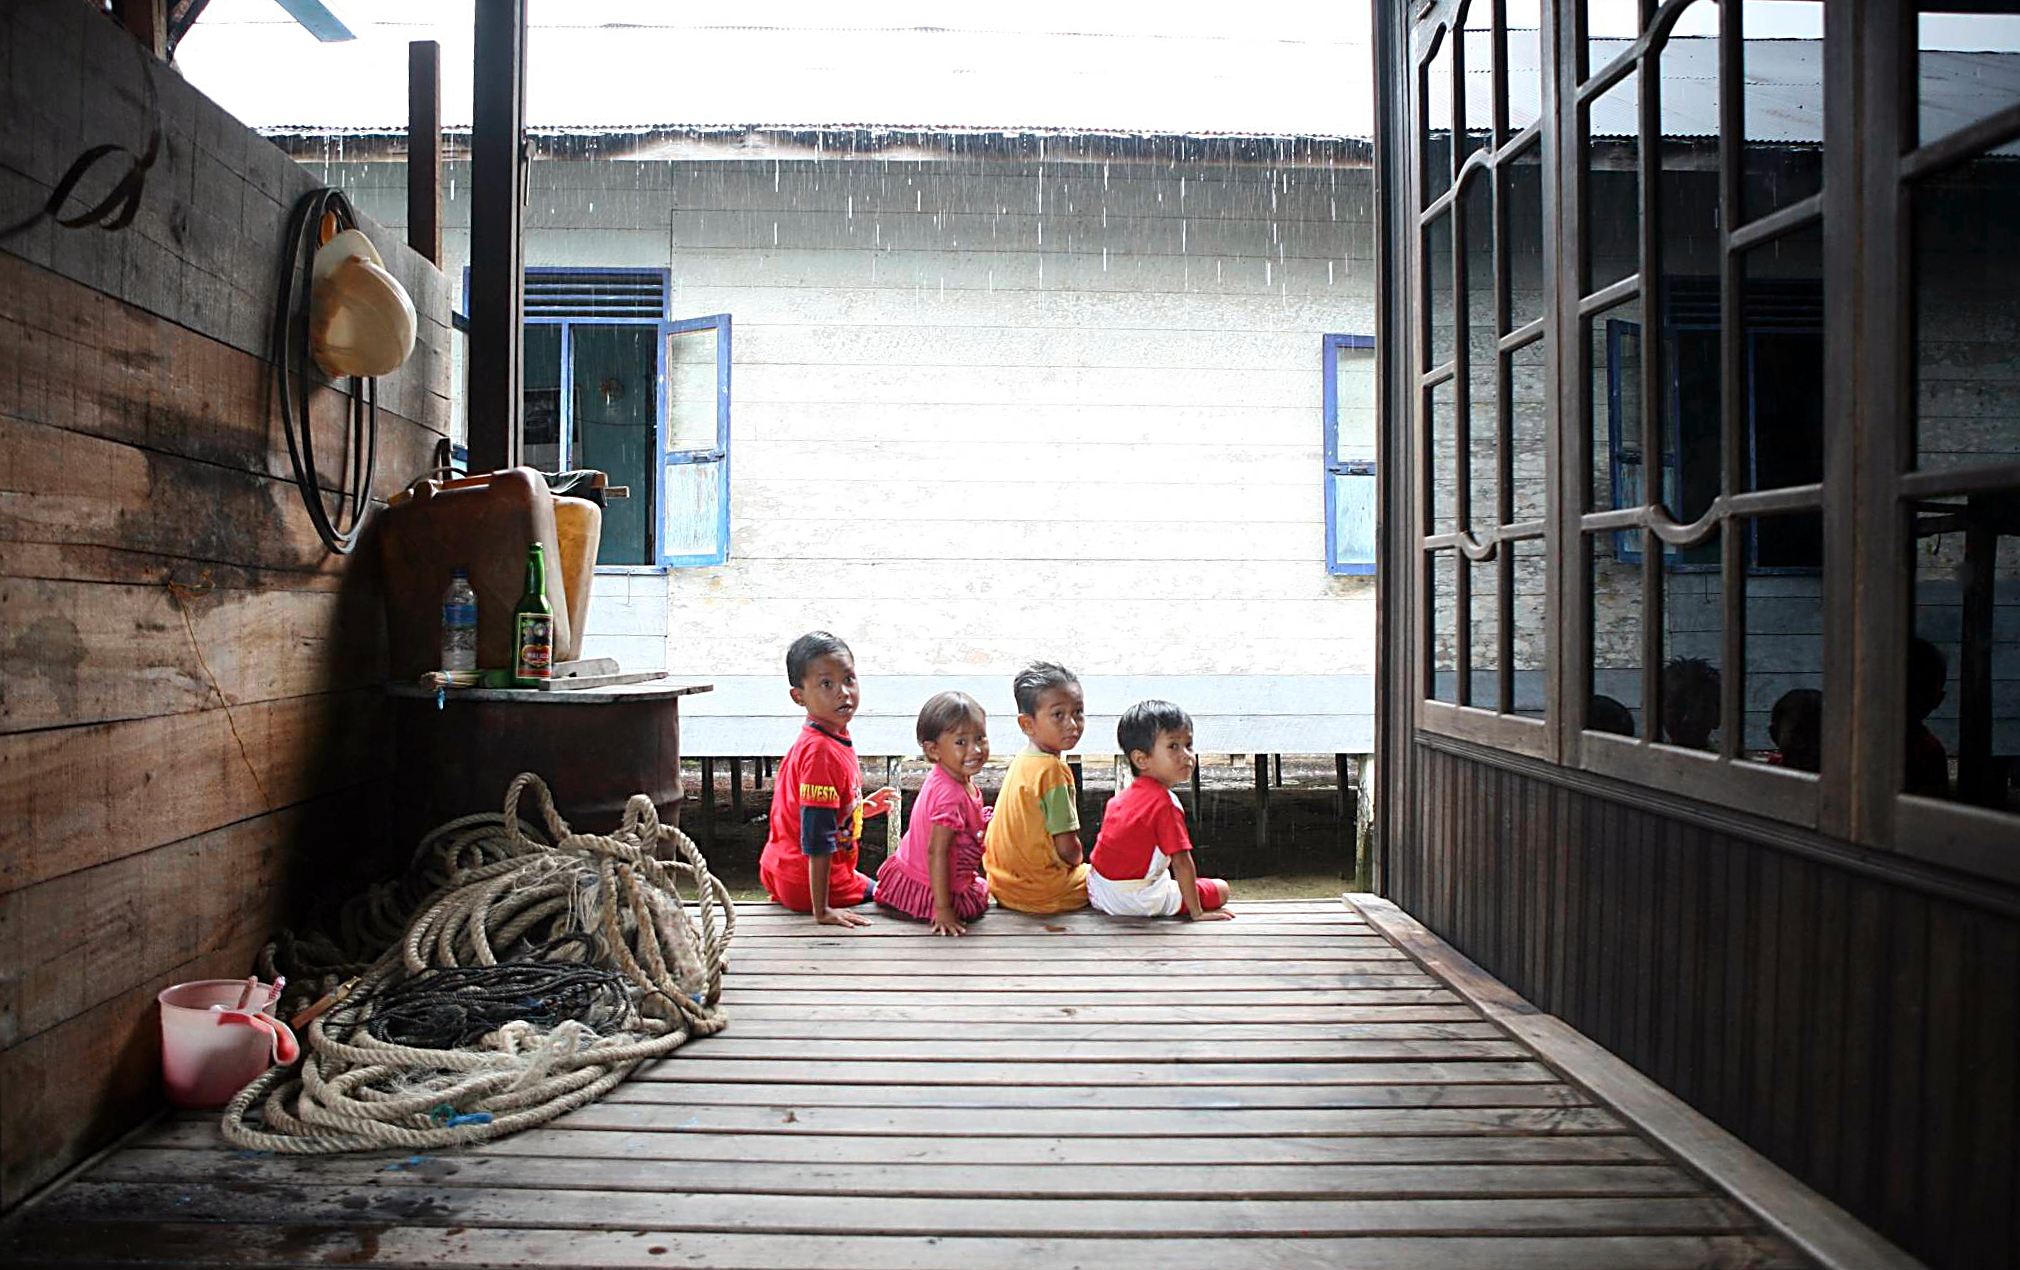 Group of young children sitting and looking out